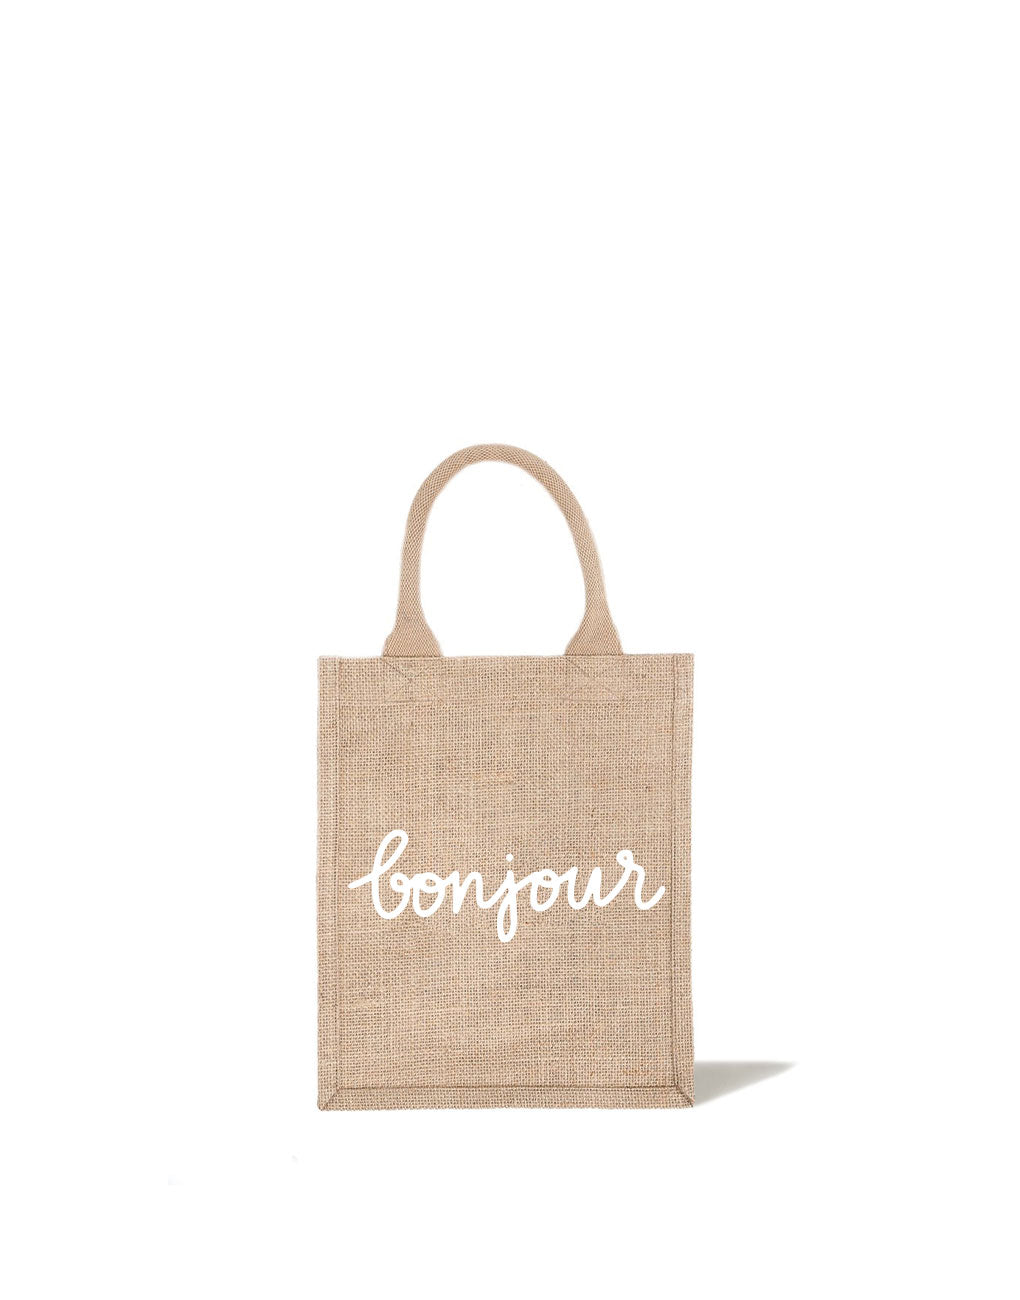 Medium Bonjour Reusable Gift Tote In White Font | The Little Market